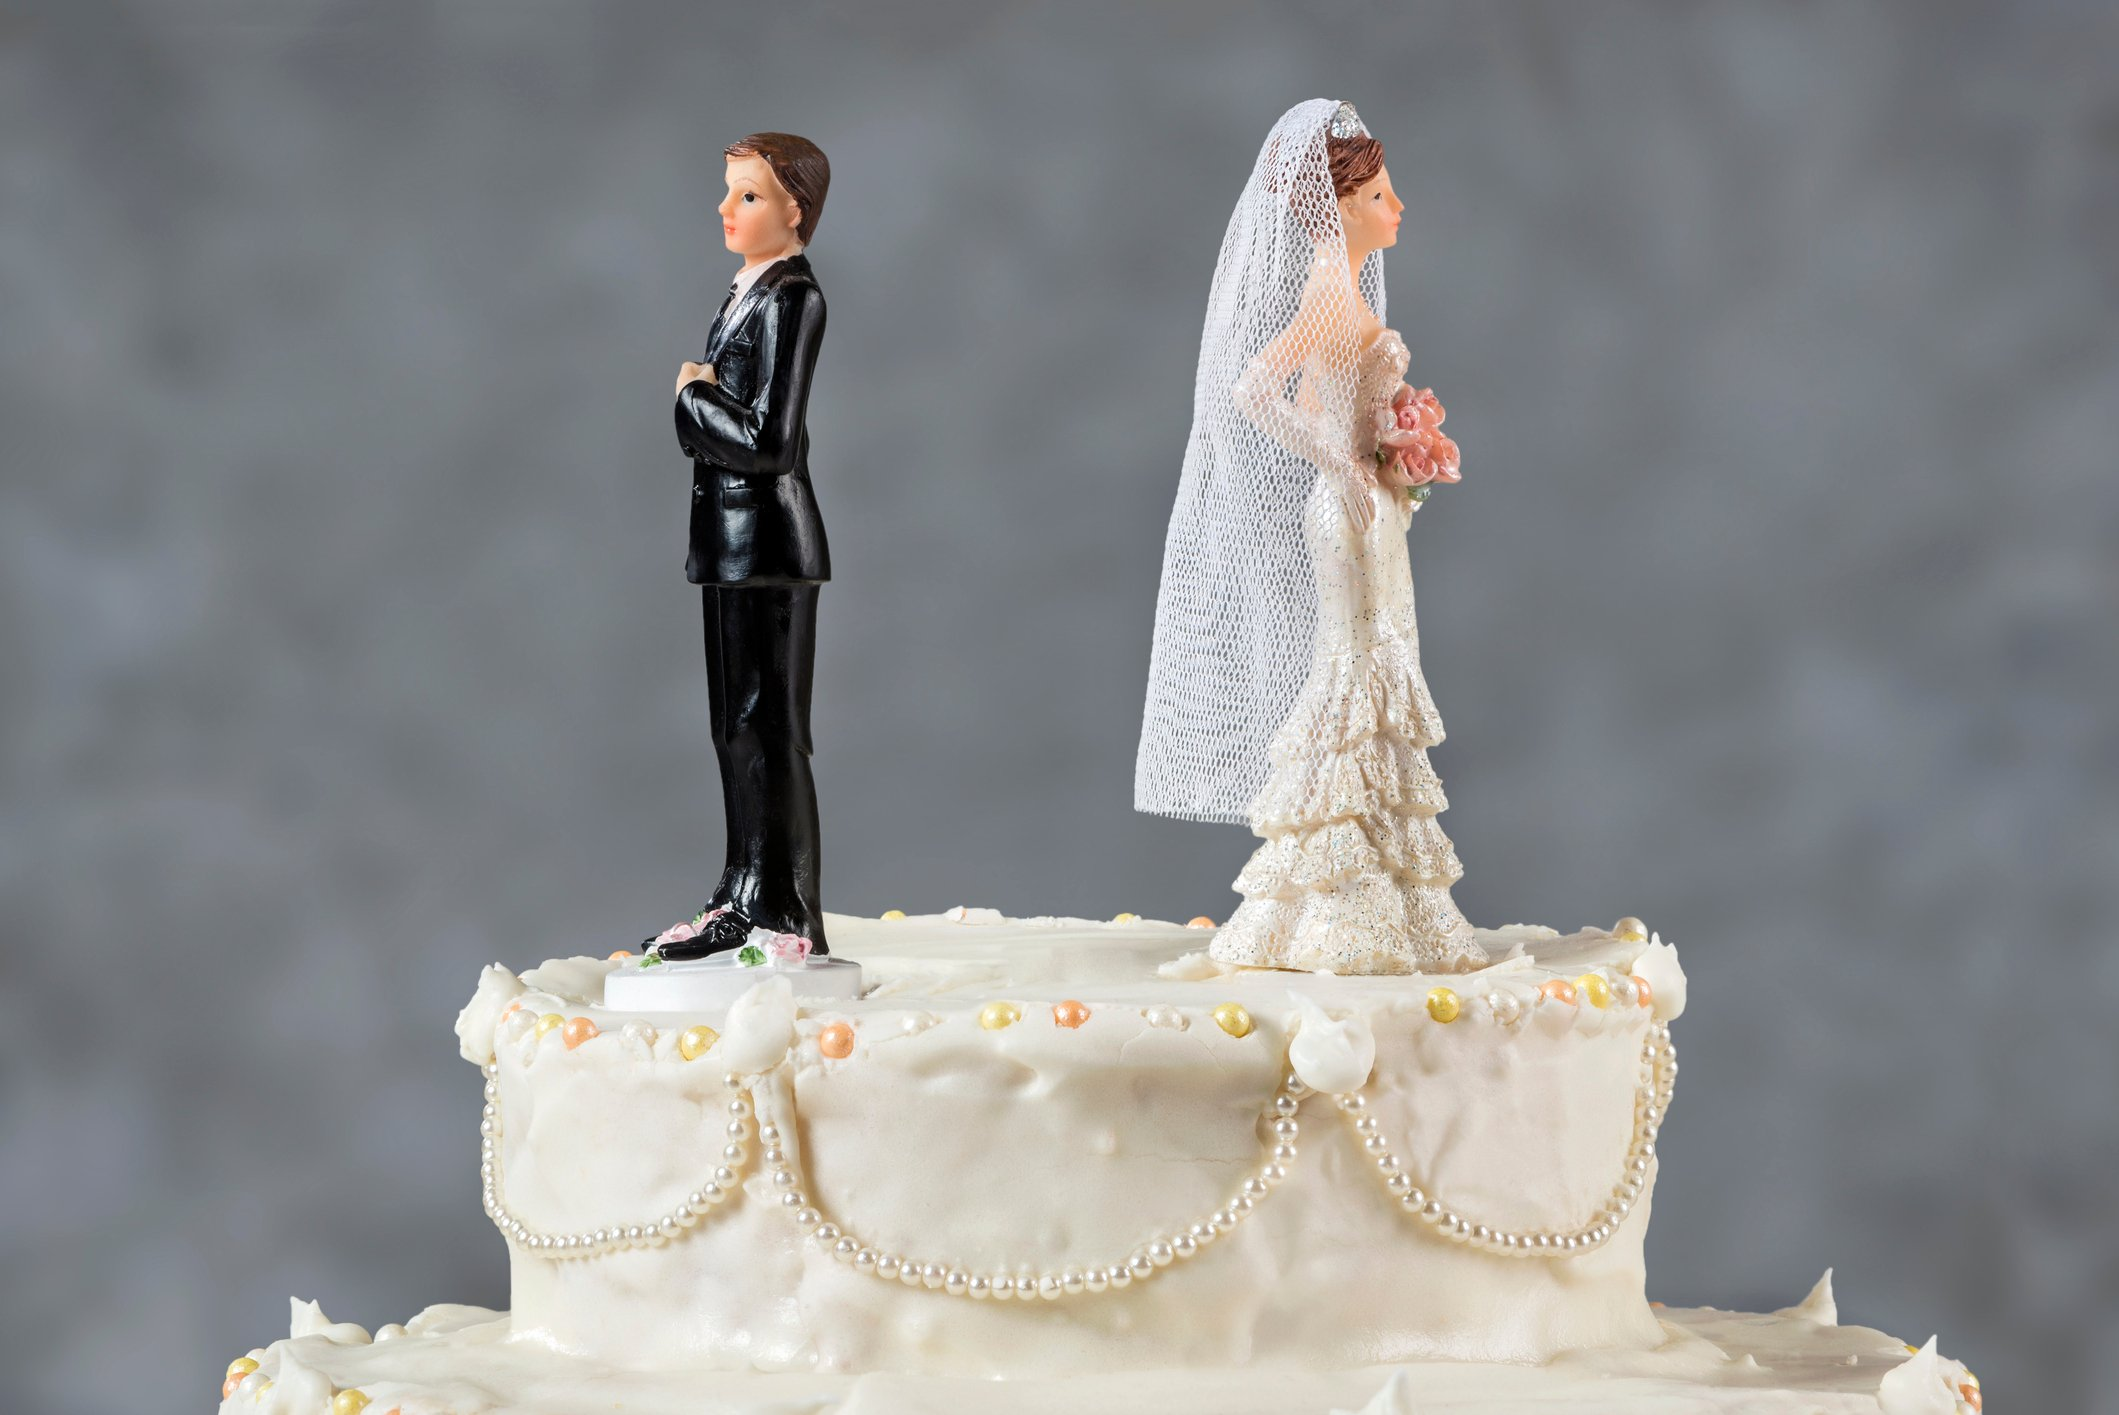 Wedding cake with angry married spouse figures on top of it.